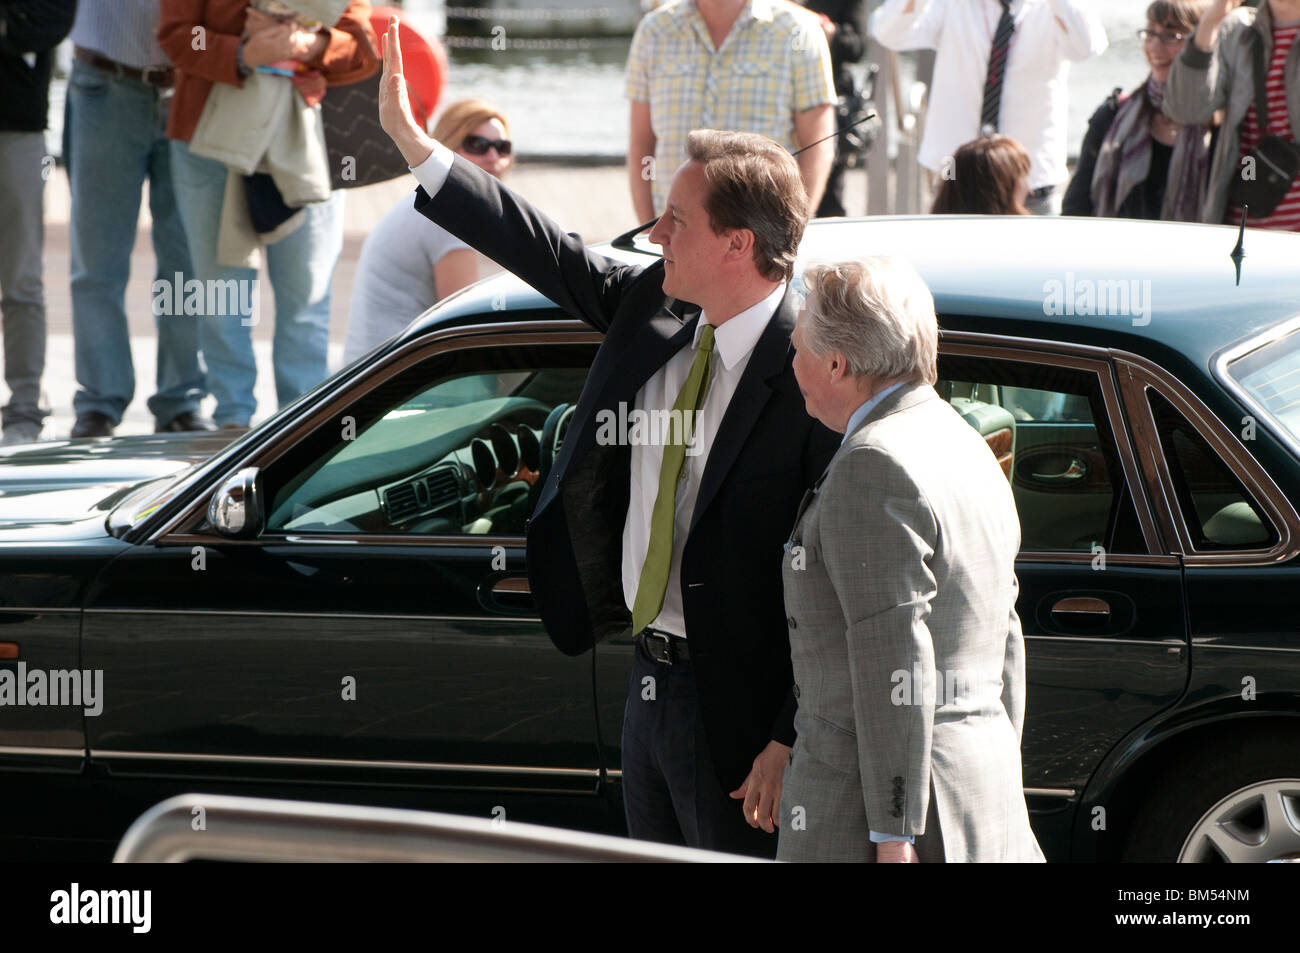 Prime Minister David Cameron visiting the Welsh Assembly, Cardiff, May 17th 2010 - Stock Image